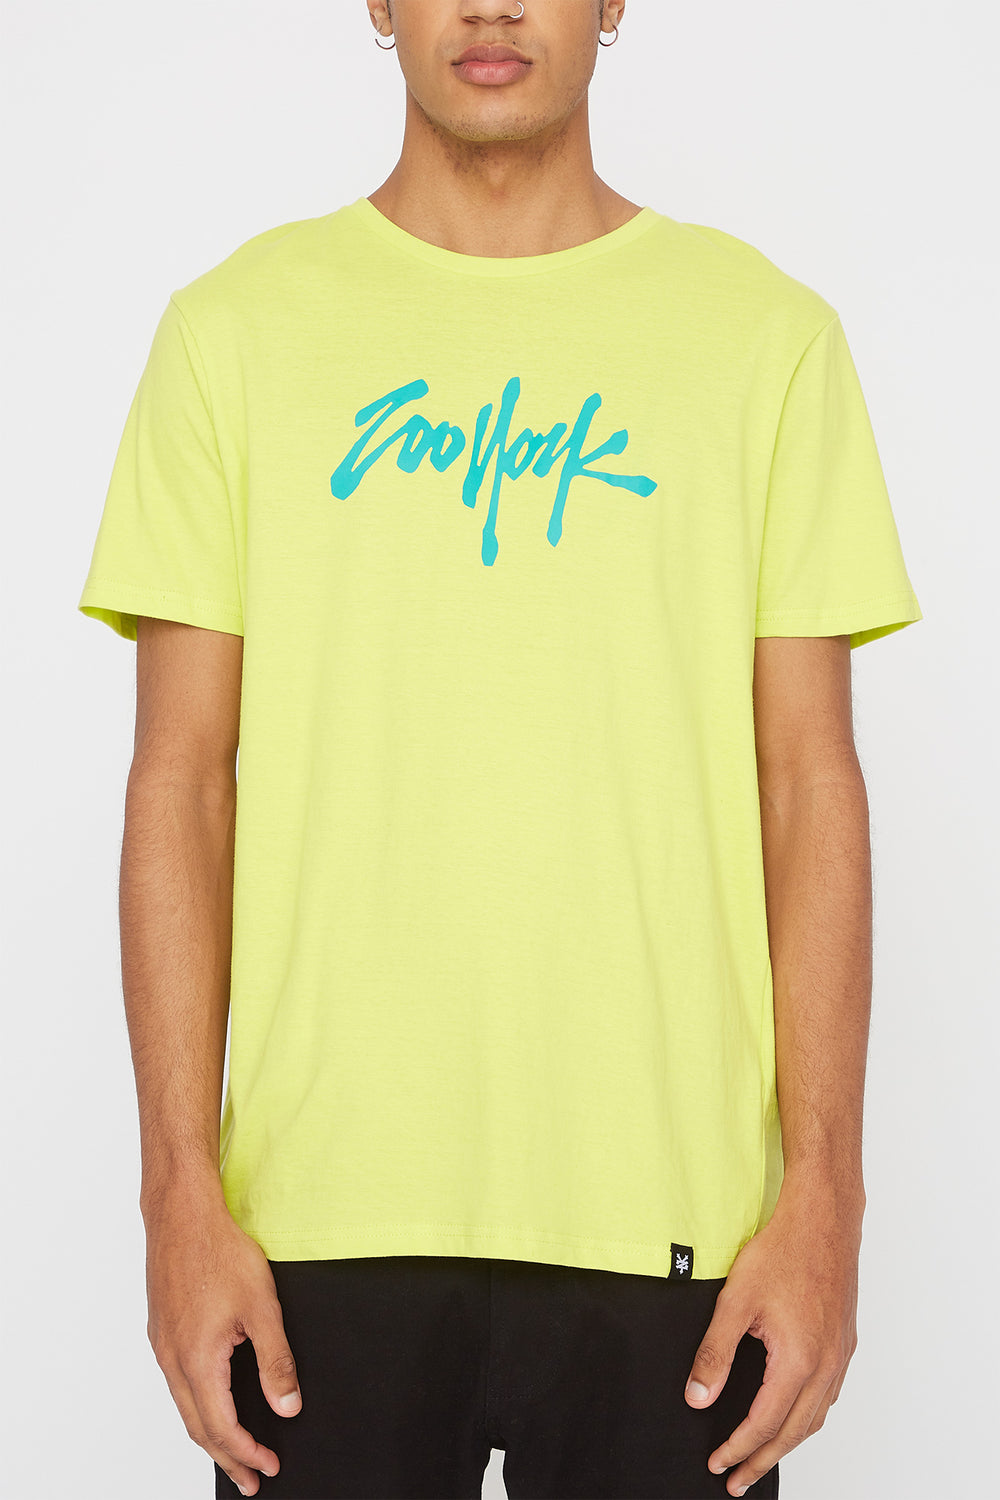 Zoo York Mens NYC 5 Boroughs T-Shirt Yellow